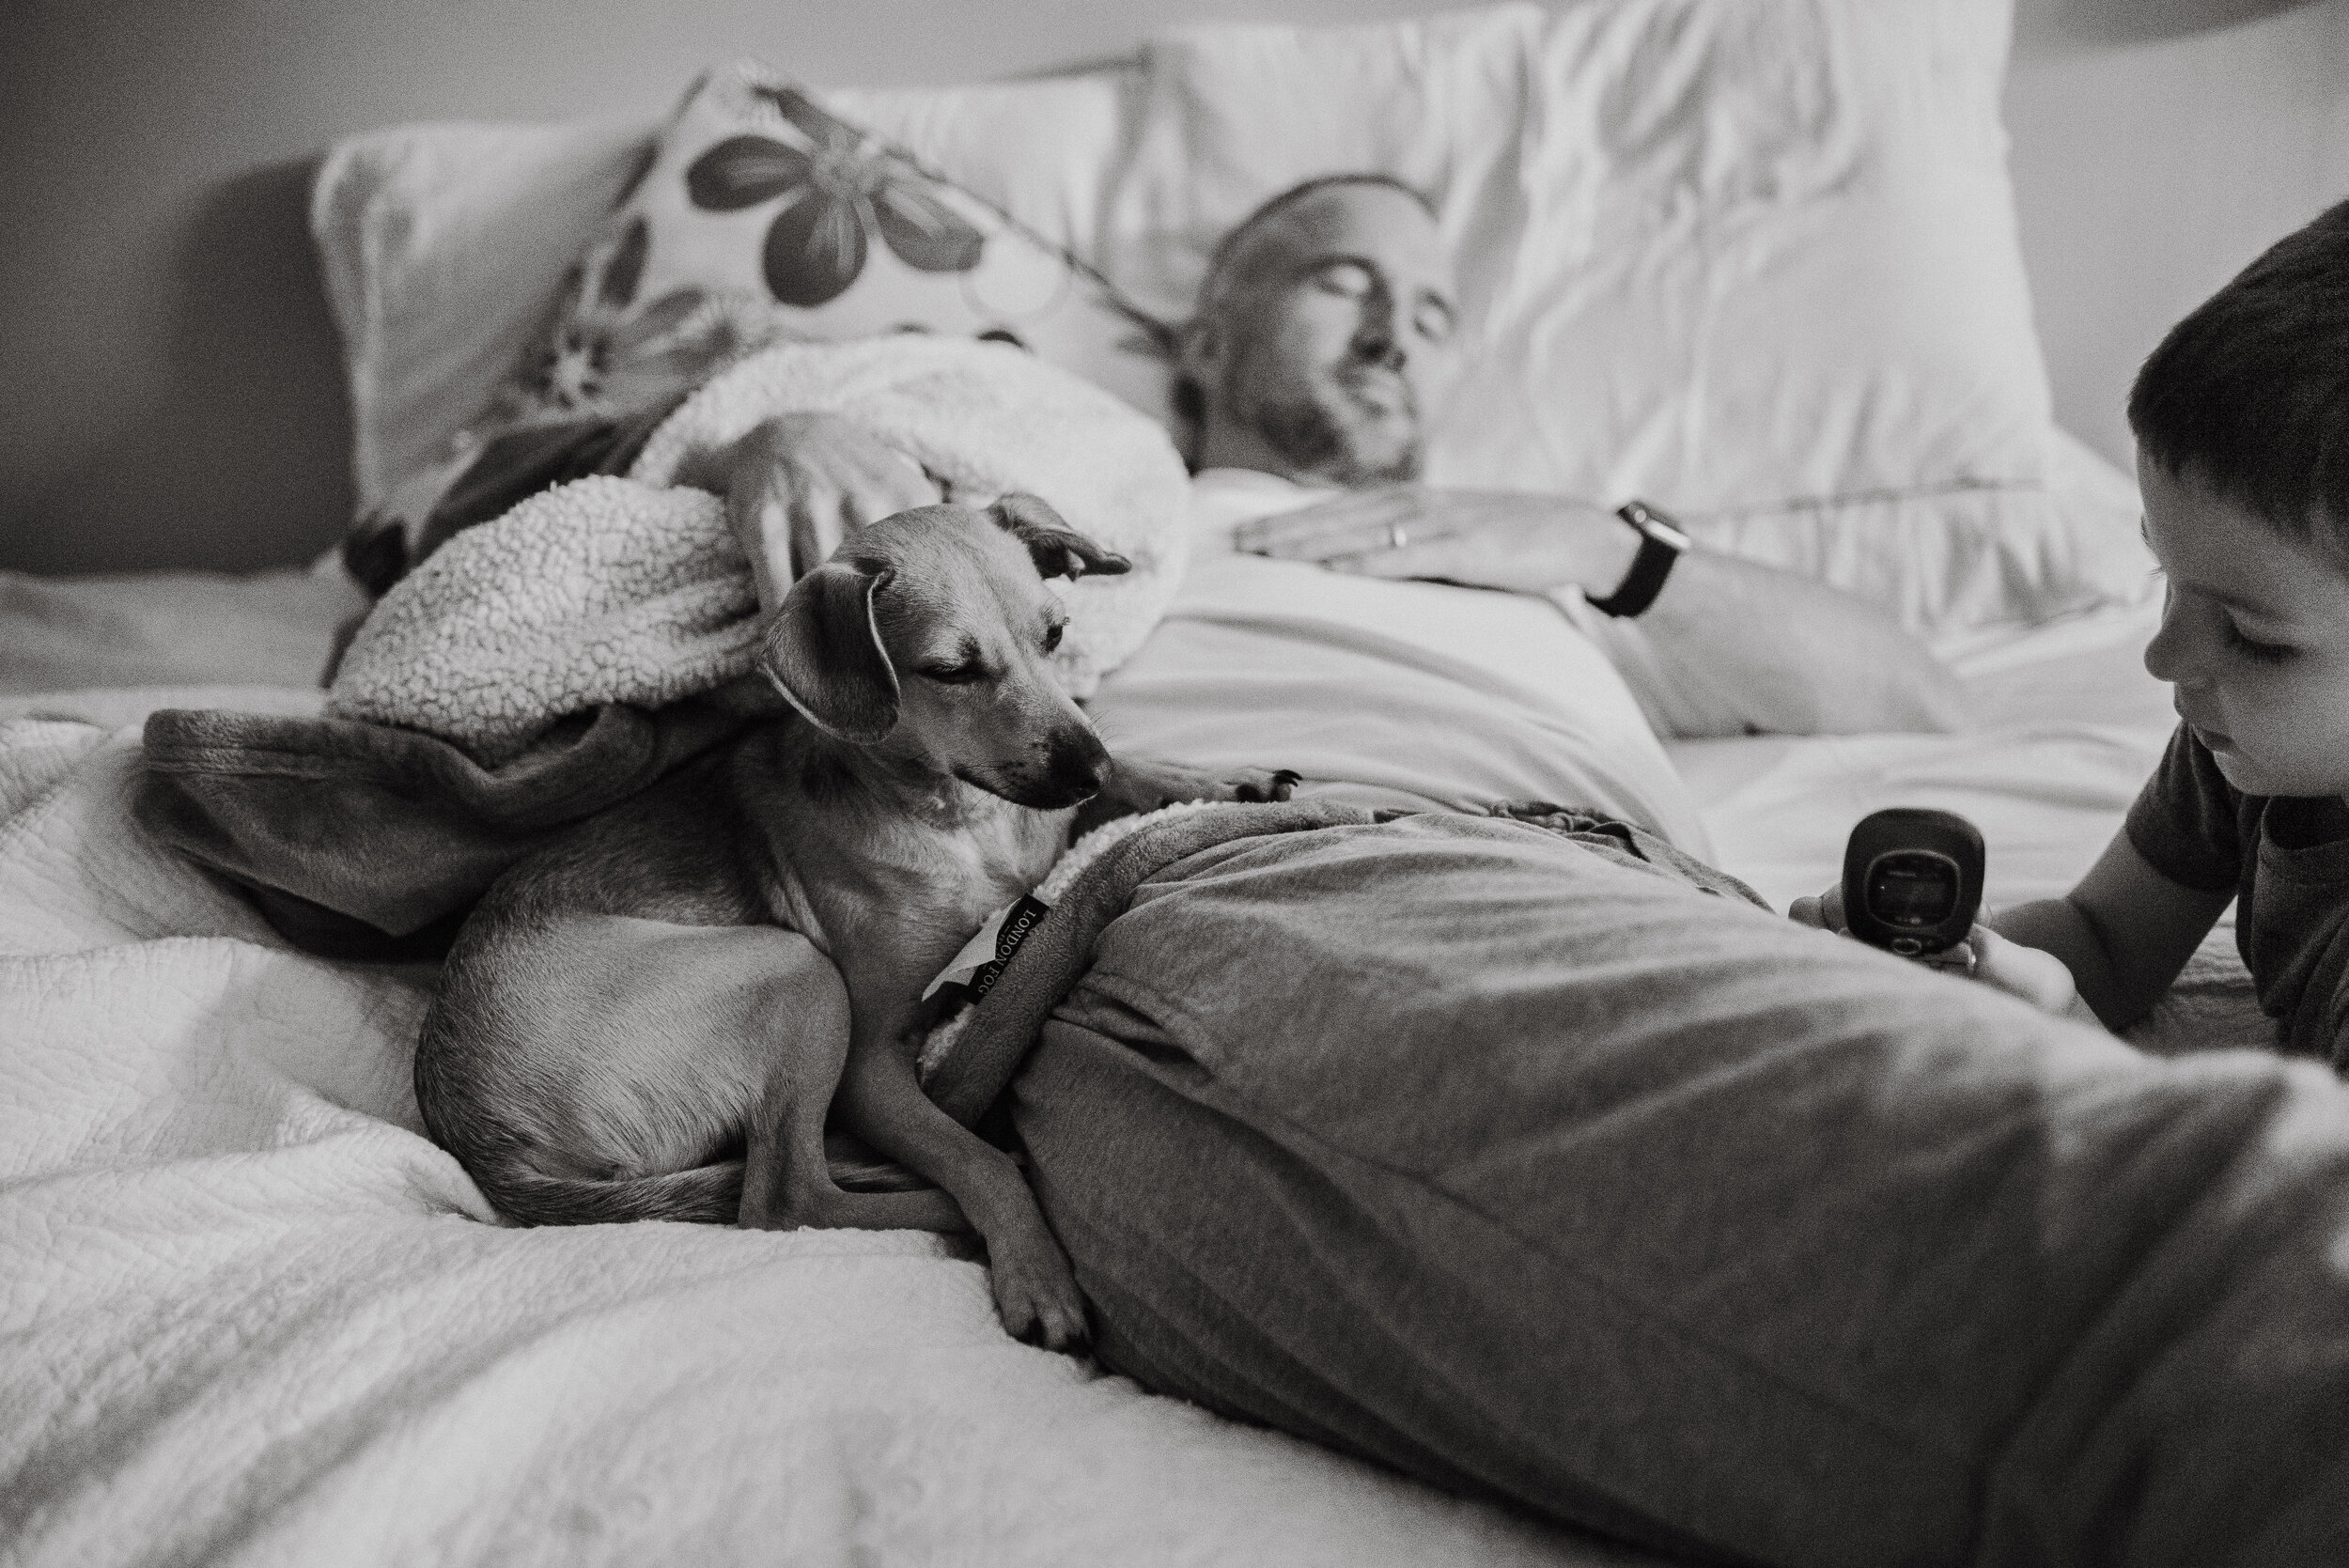 Man and dog asleep on a bed, black and white.